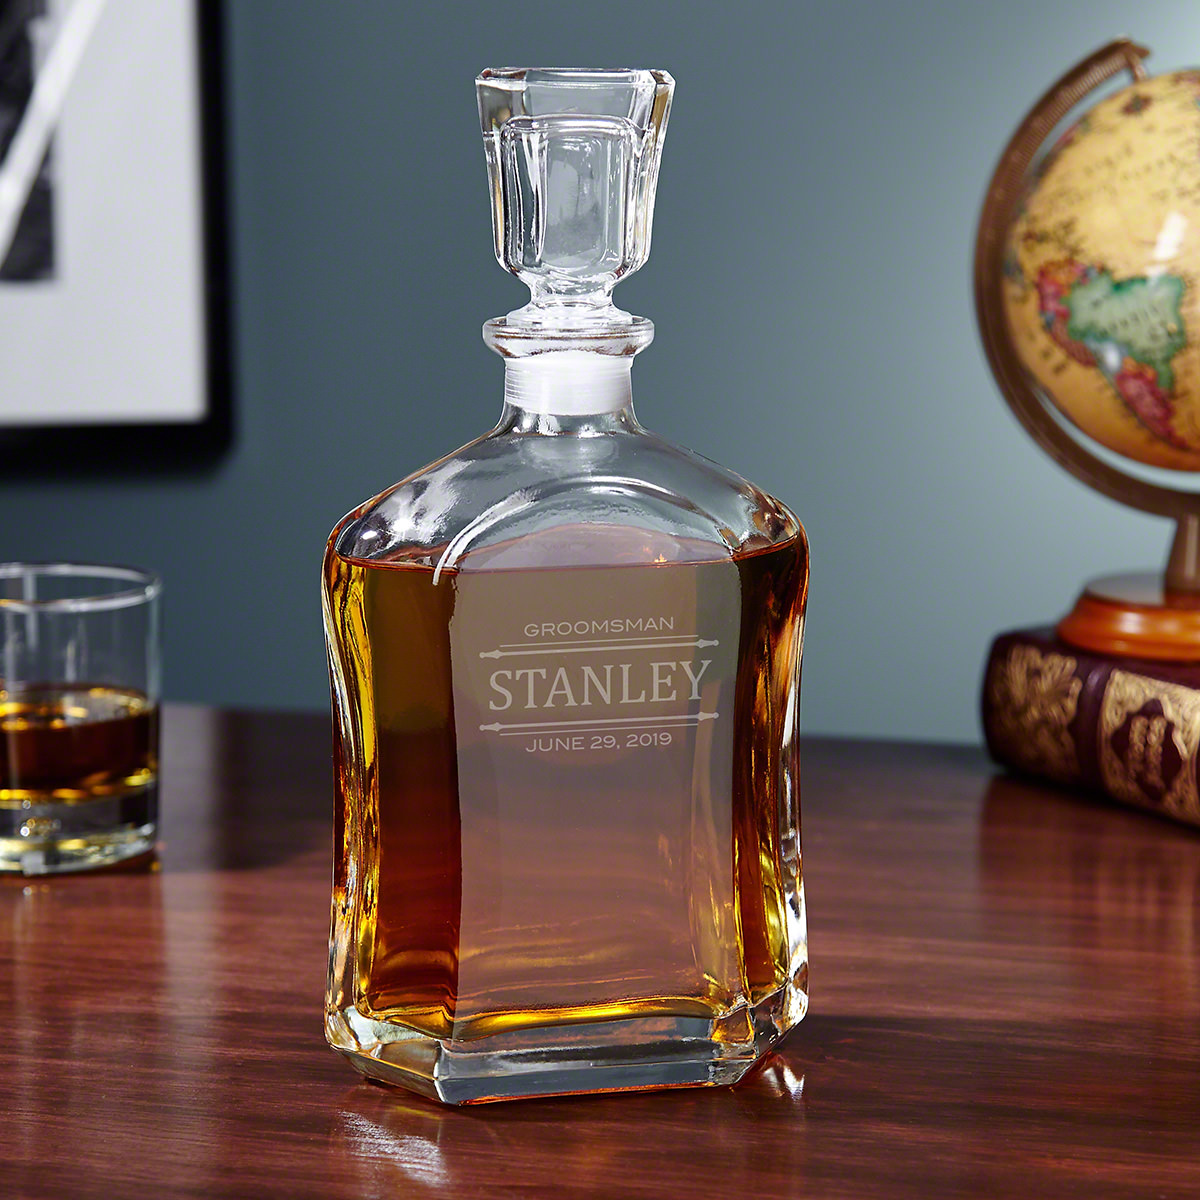 Stanford-Groomsmen-Personalized-Whiskey-Decanter